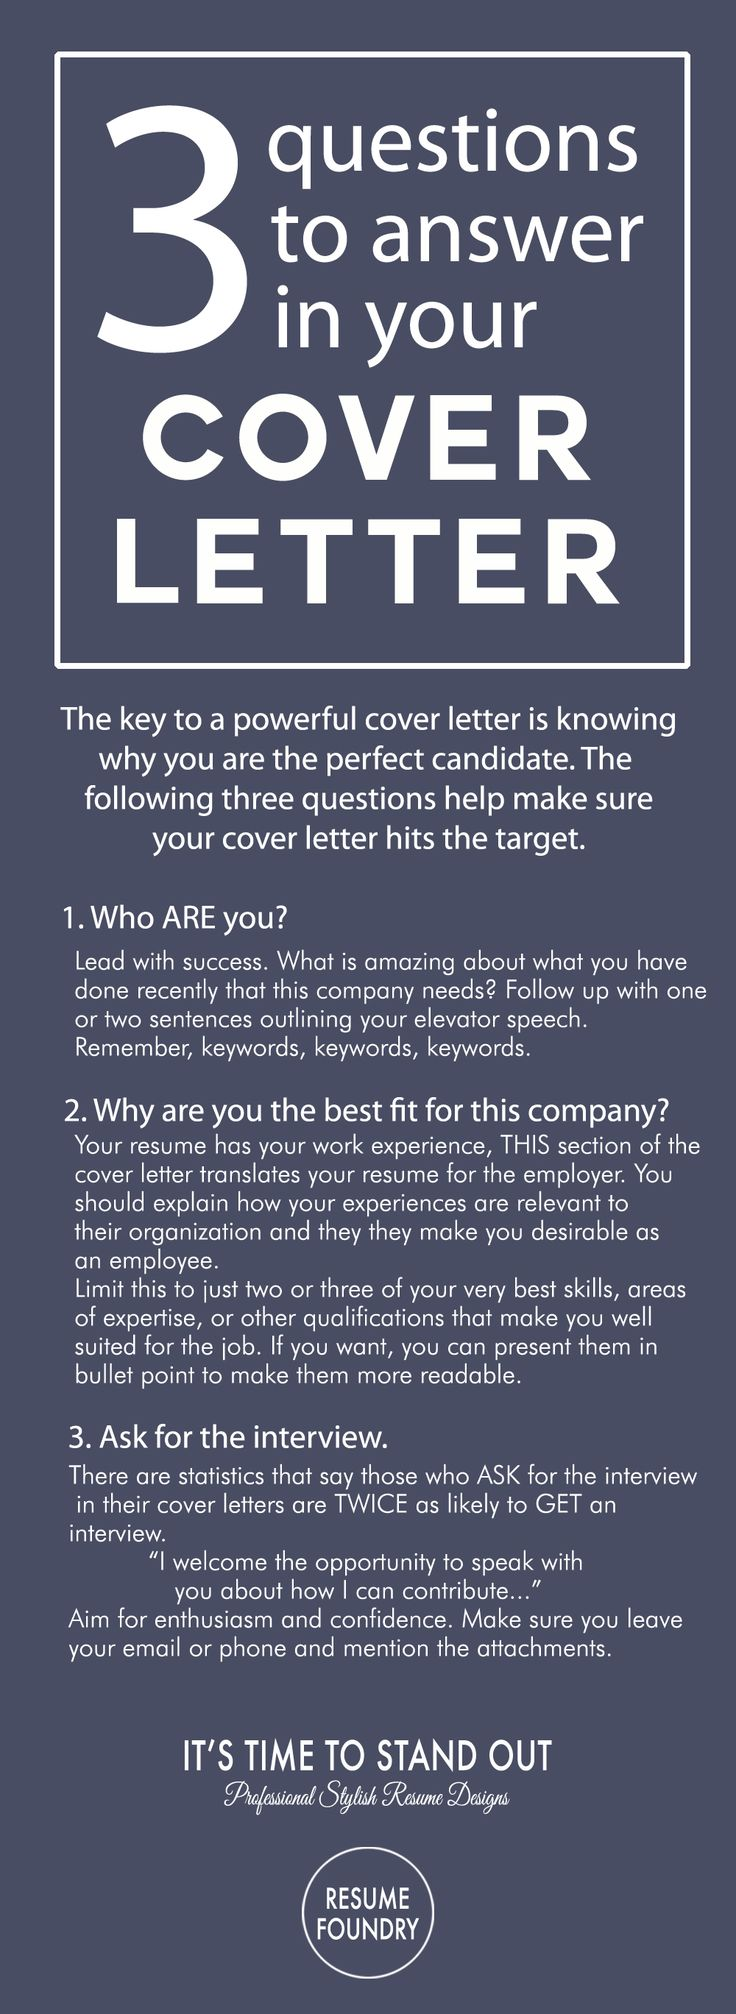 cover letter tips outline how to write a cover letter resume ideasgood - What To Put On Cover Letter Of Resume